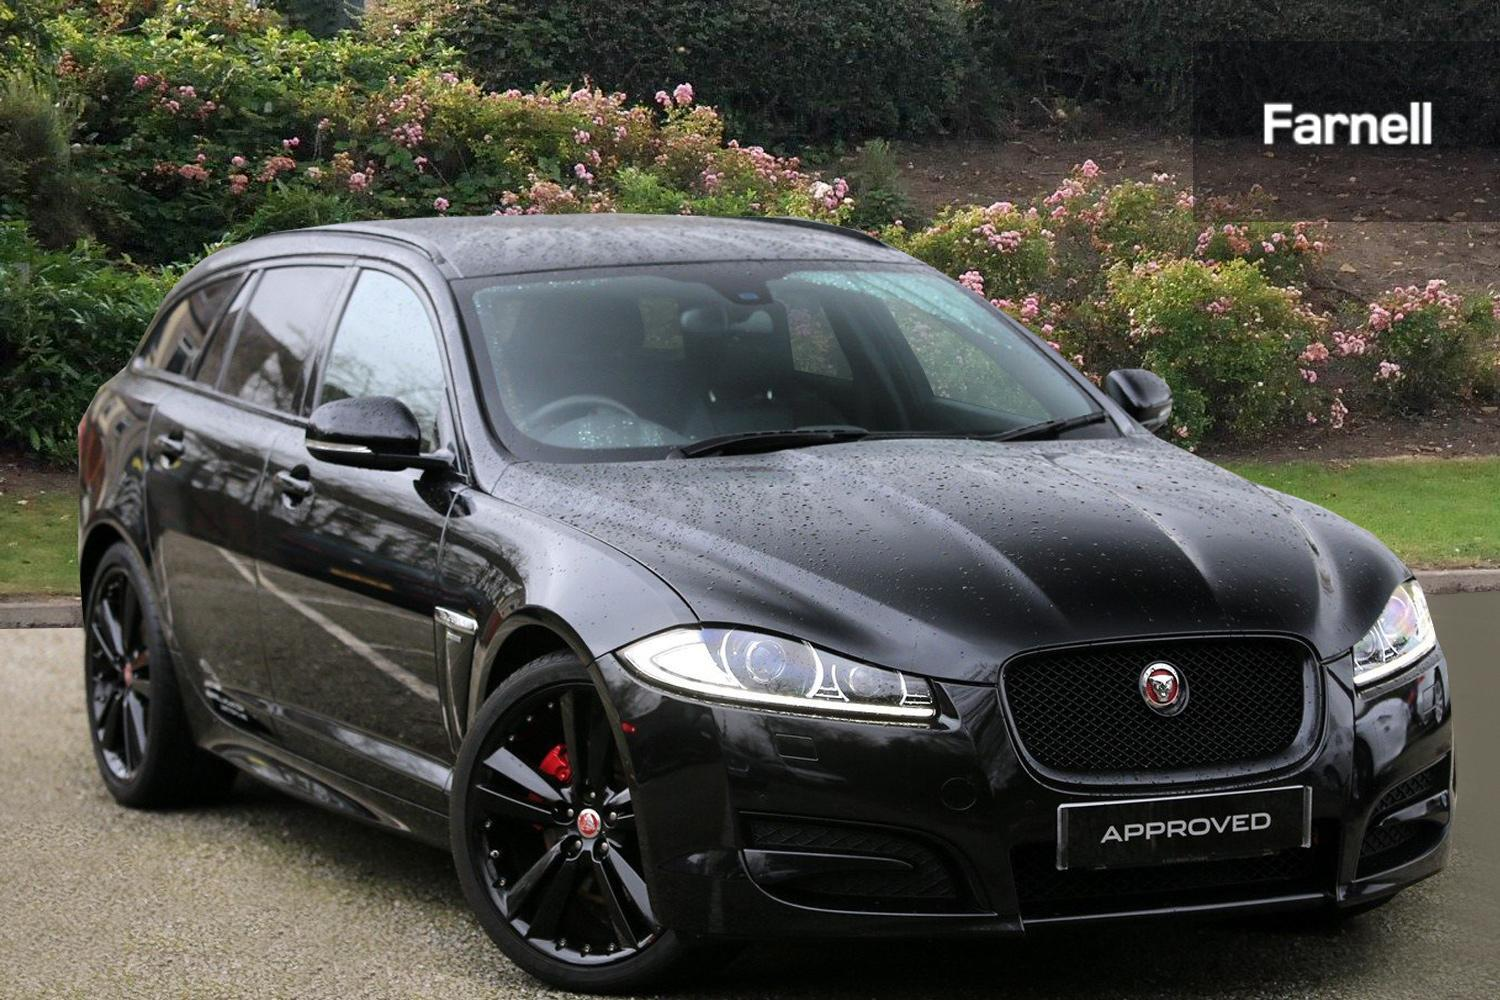 used jaguar xf 2 2d r sport black 5dr auto diesel estate for sale farnell jaguar. Black Bedroom Furniture Sets. Home Design Ideas